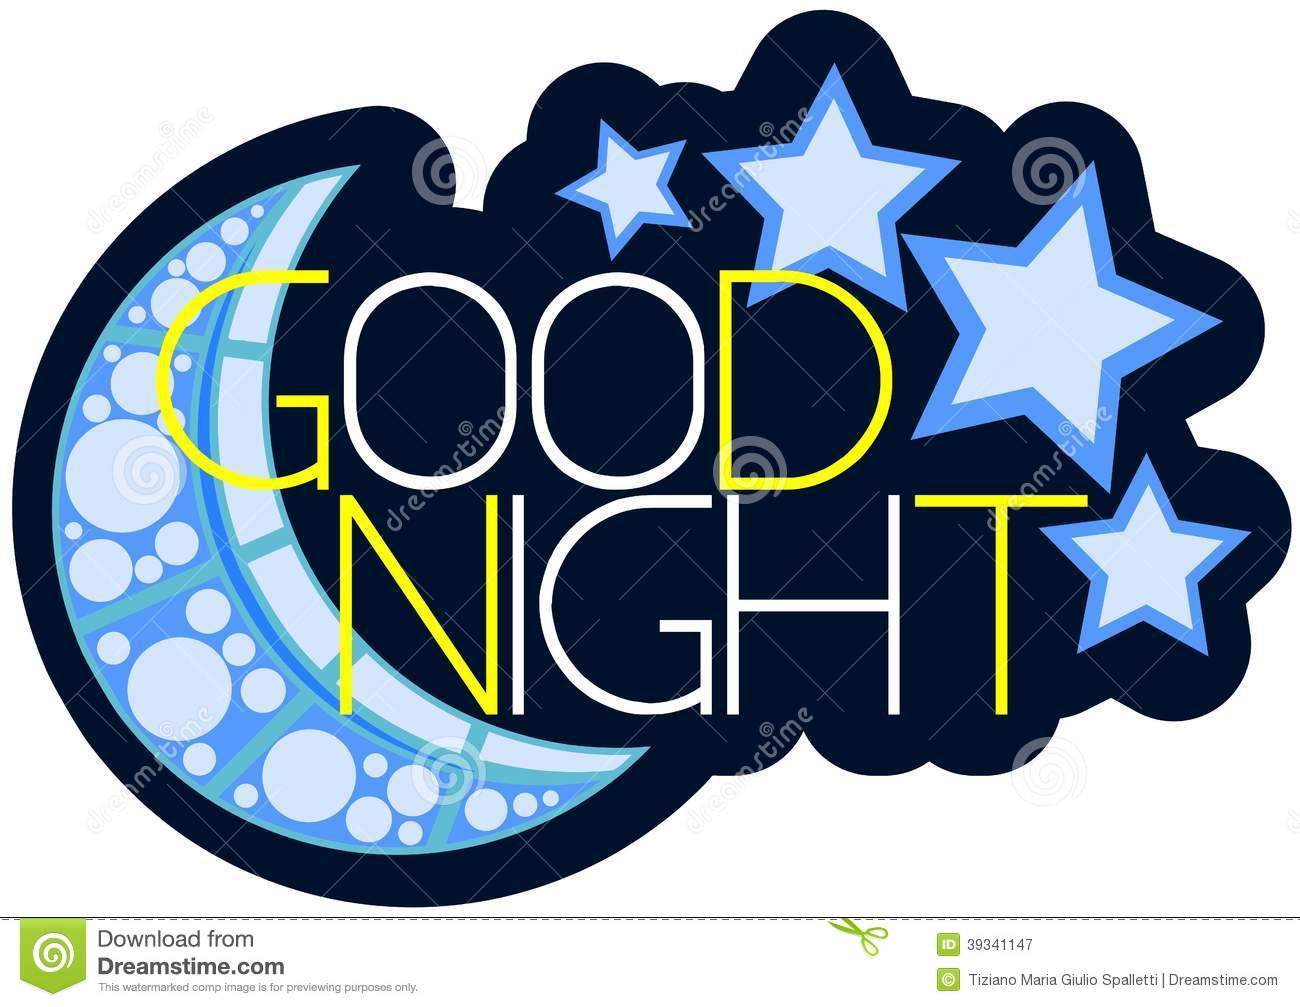 Goodnight Everyone Clipart.